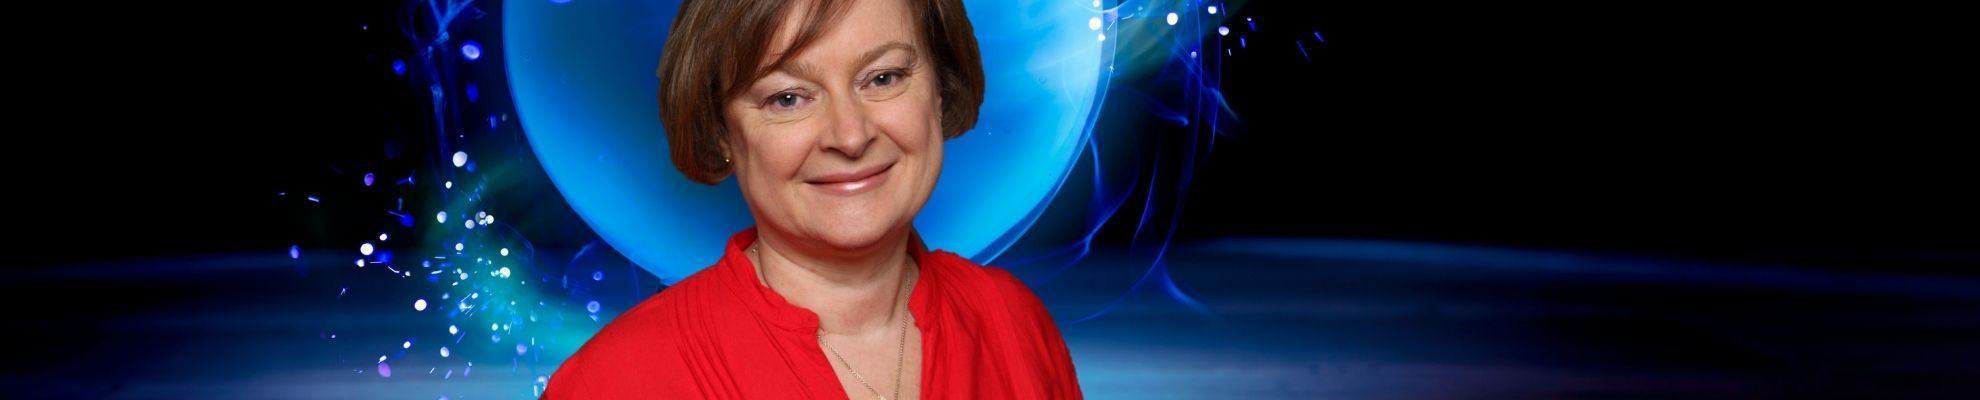 dr lesley phillips gives psychic readings